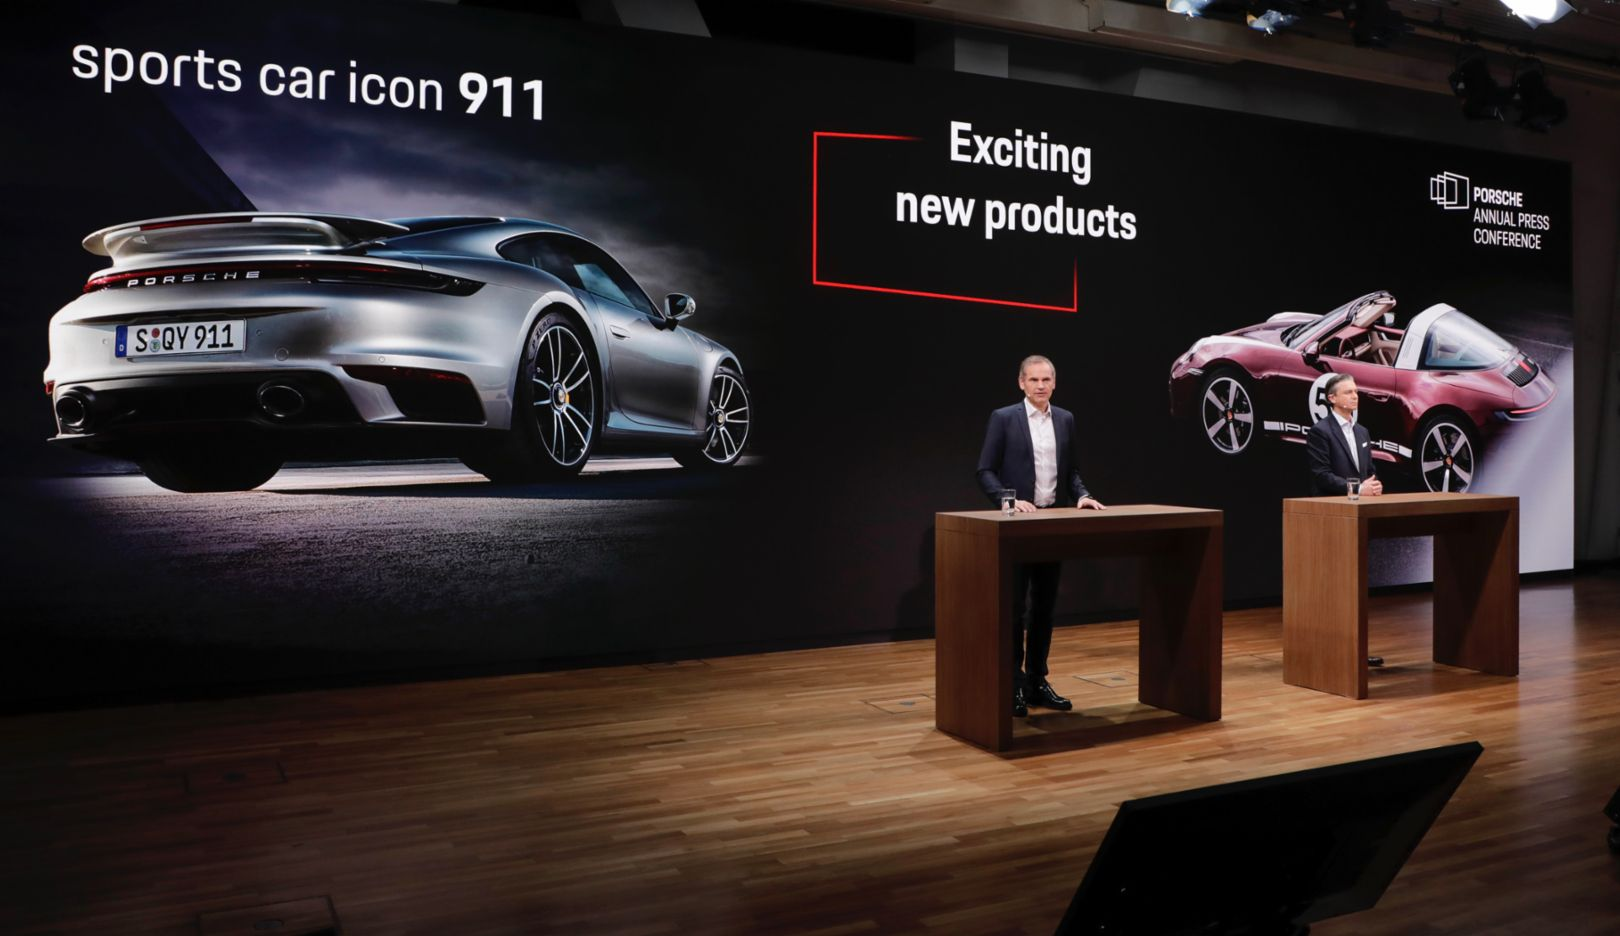 Porsche achieves sustainable growth in 2020 financial year